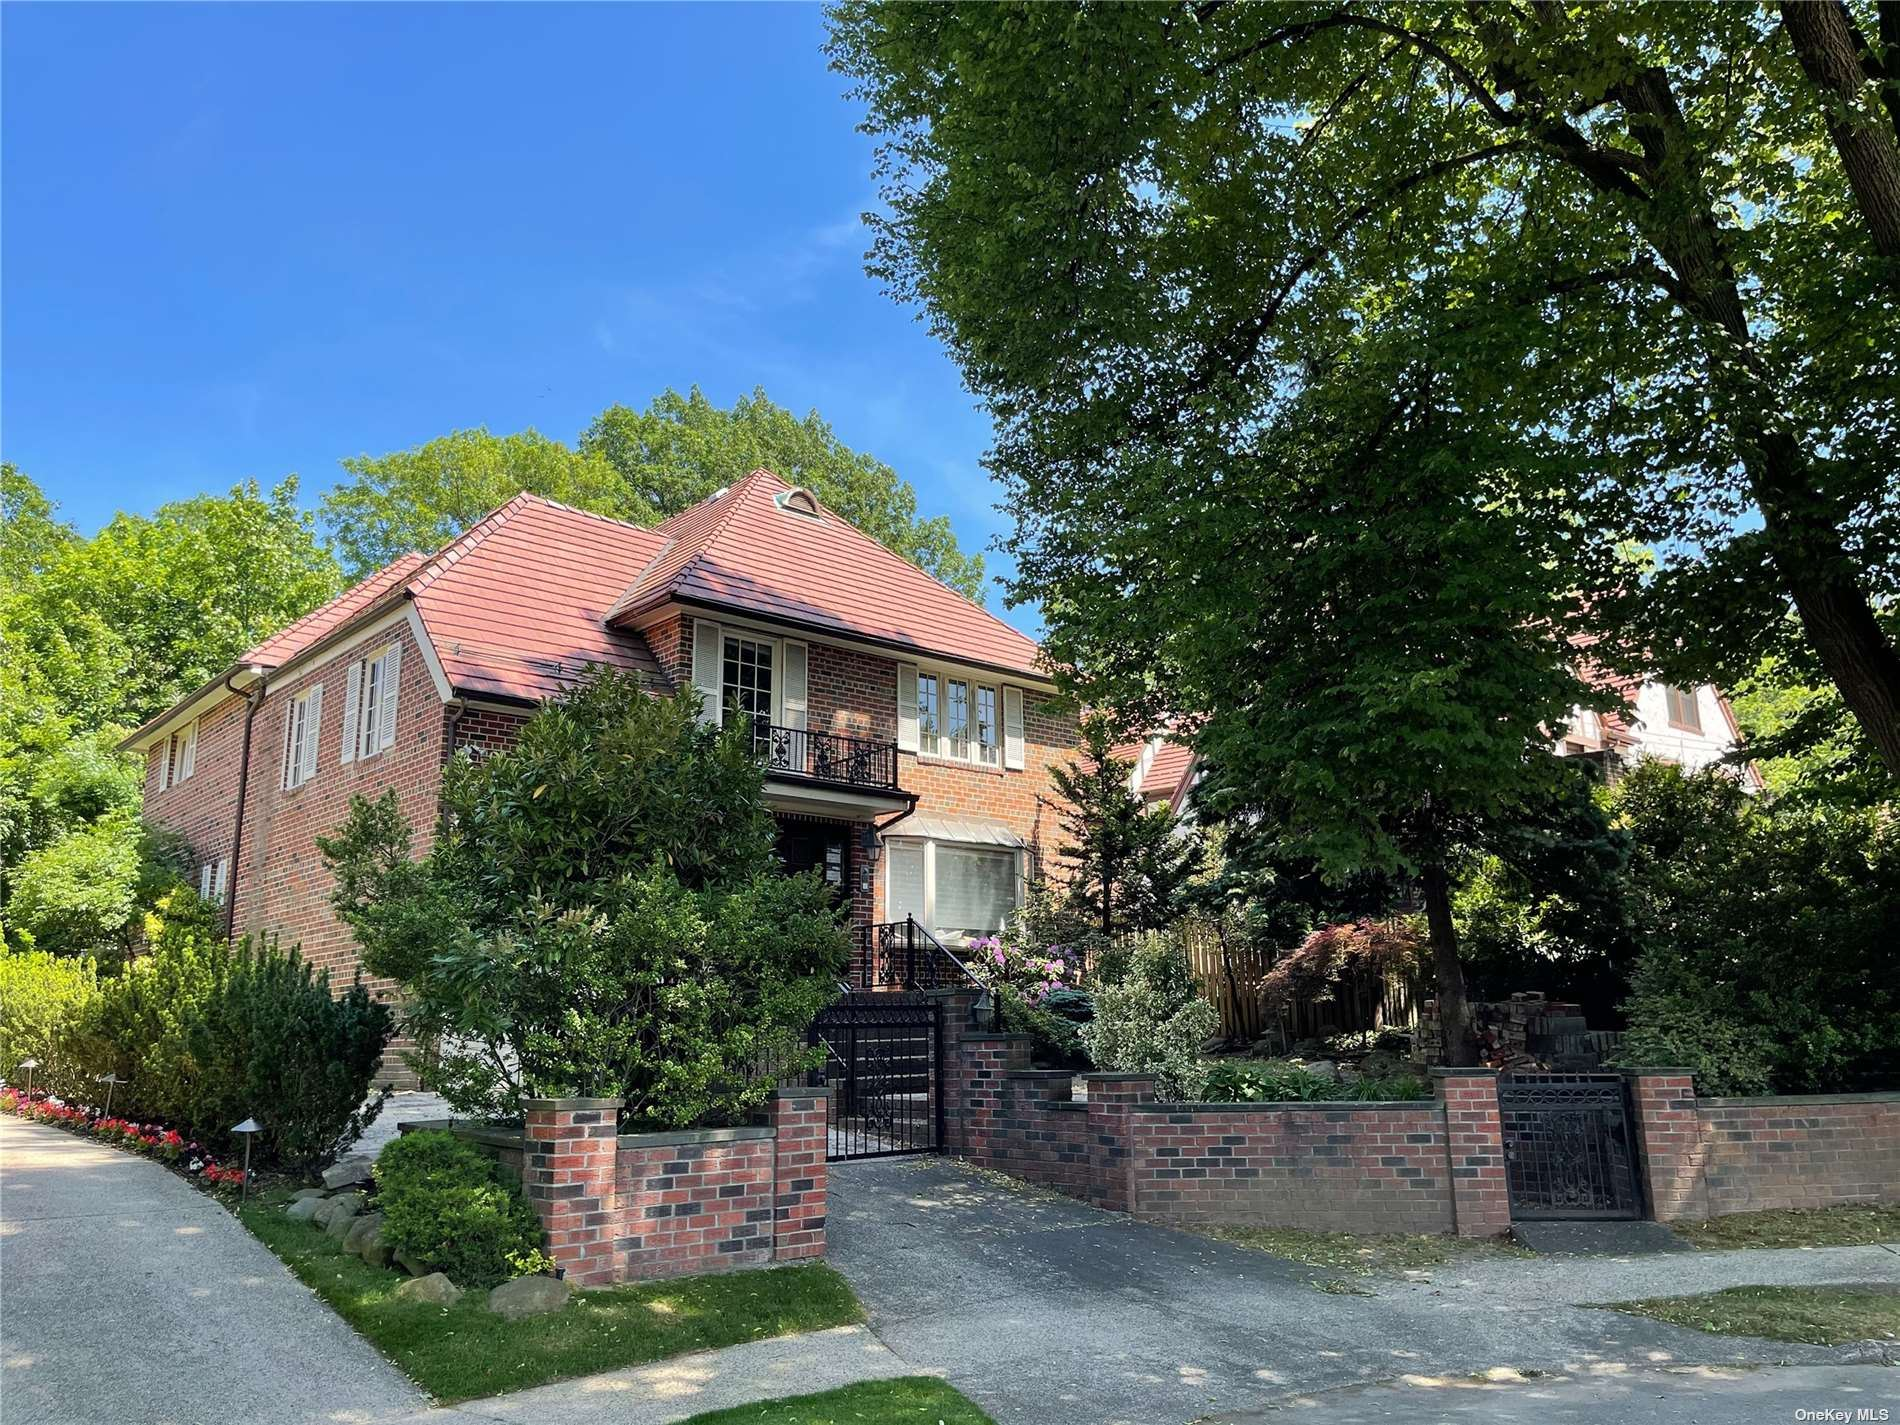 152 Whitson Street, Forest Hills, NY 11375 - MLS#: 3310384